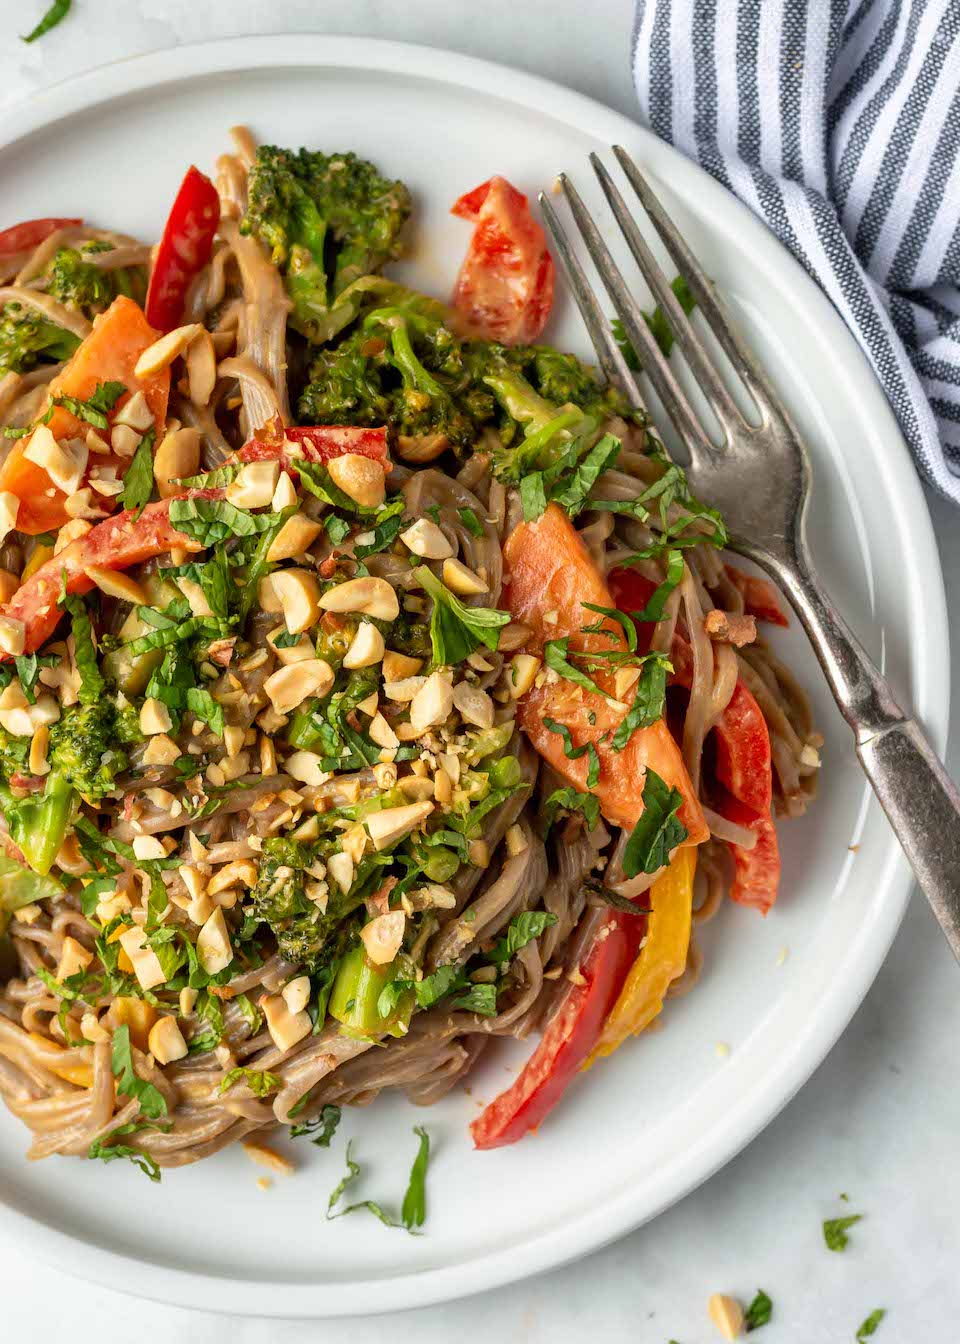 Easy Peanut Noodles with Vegetables